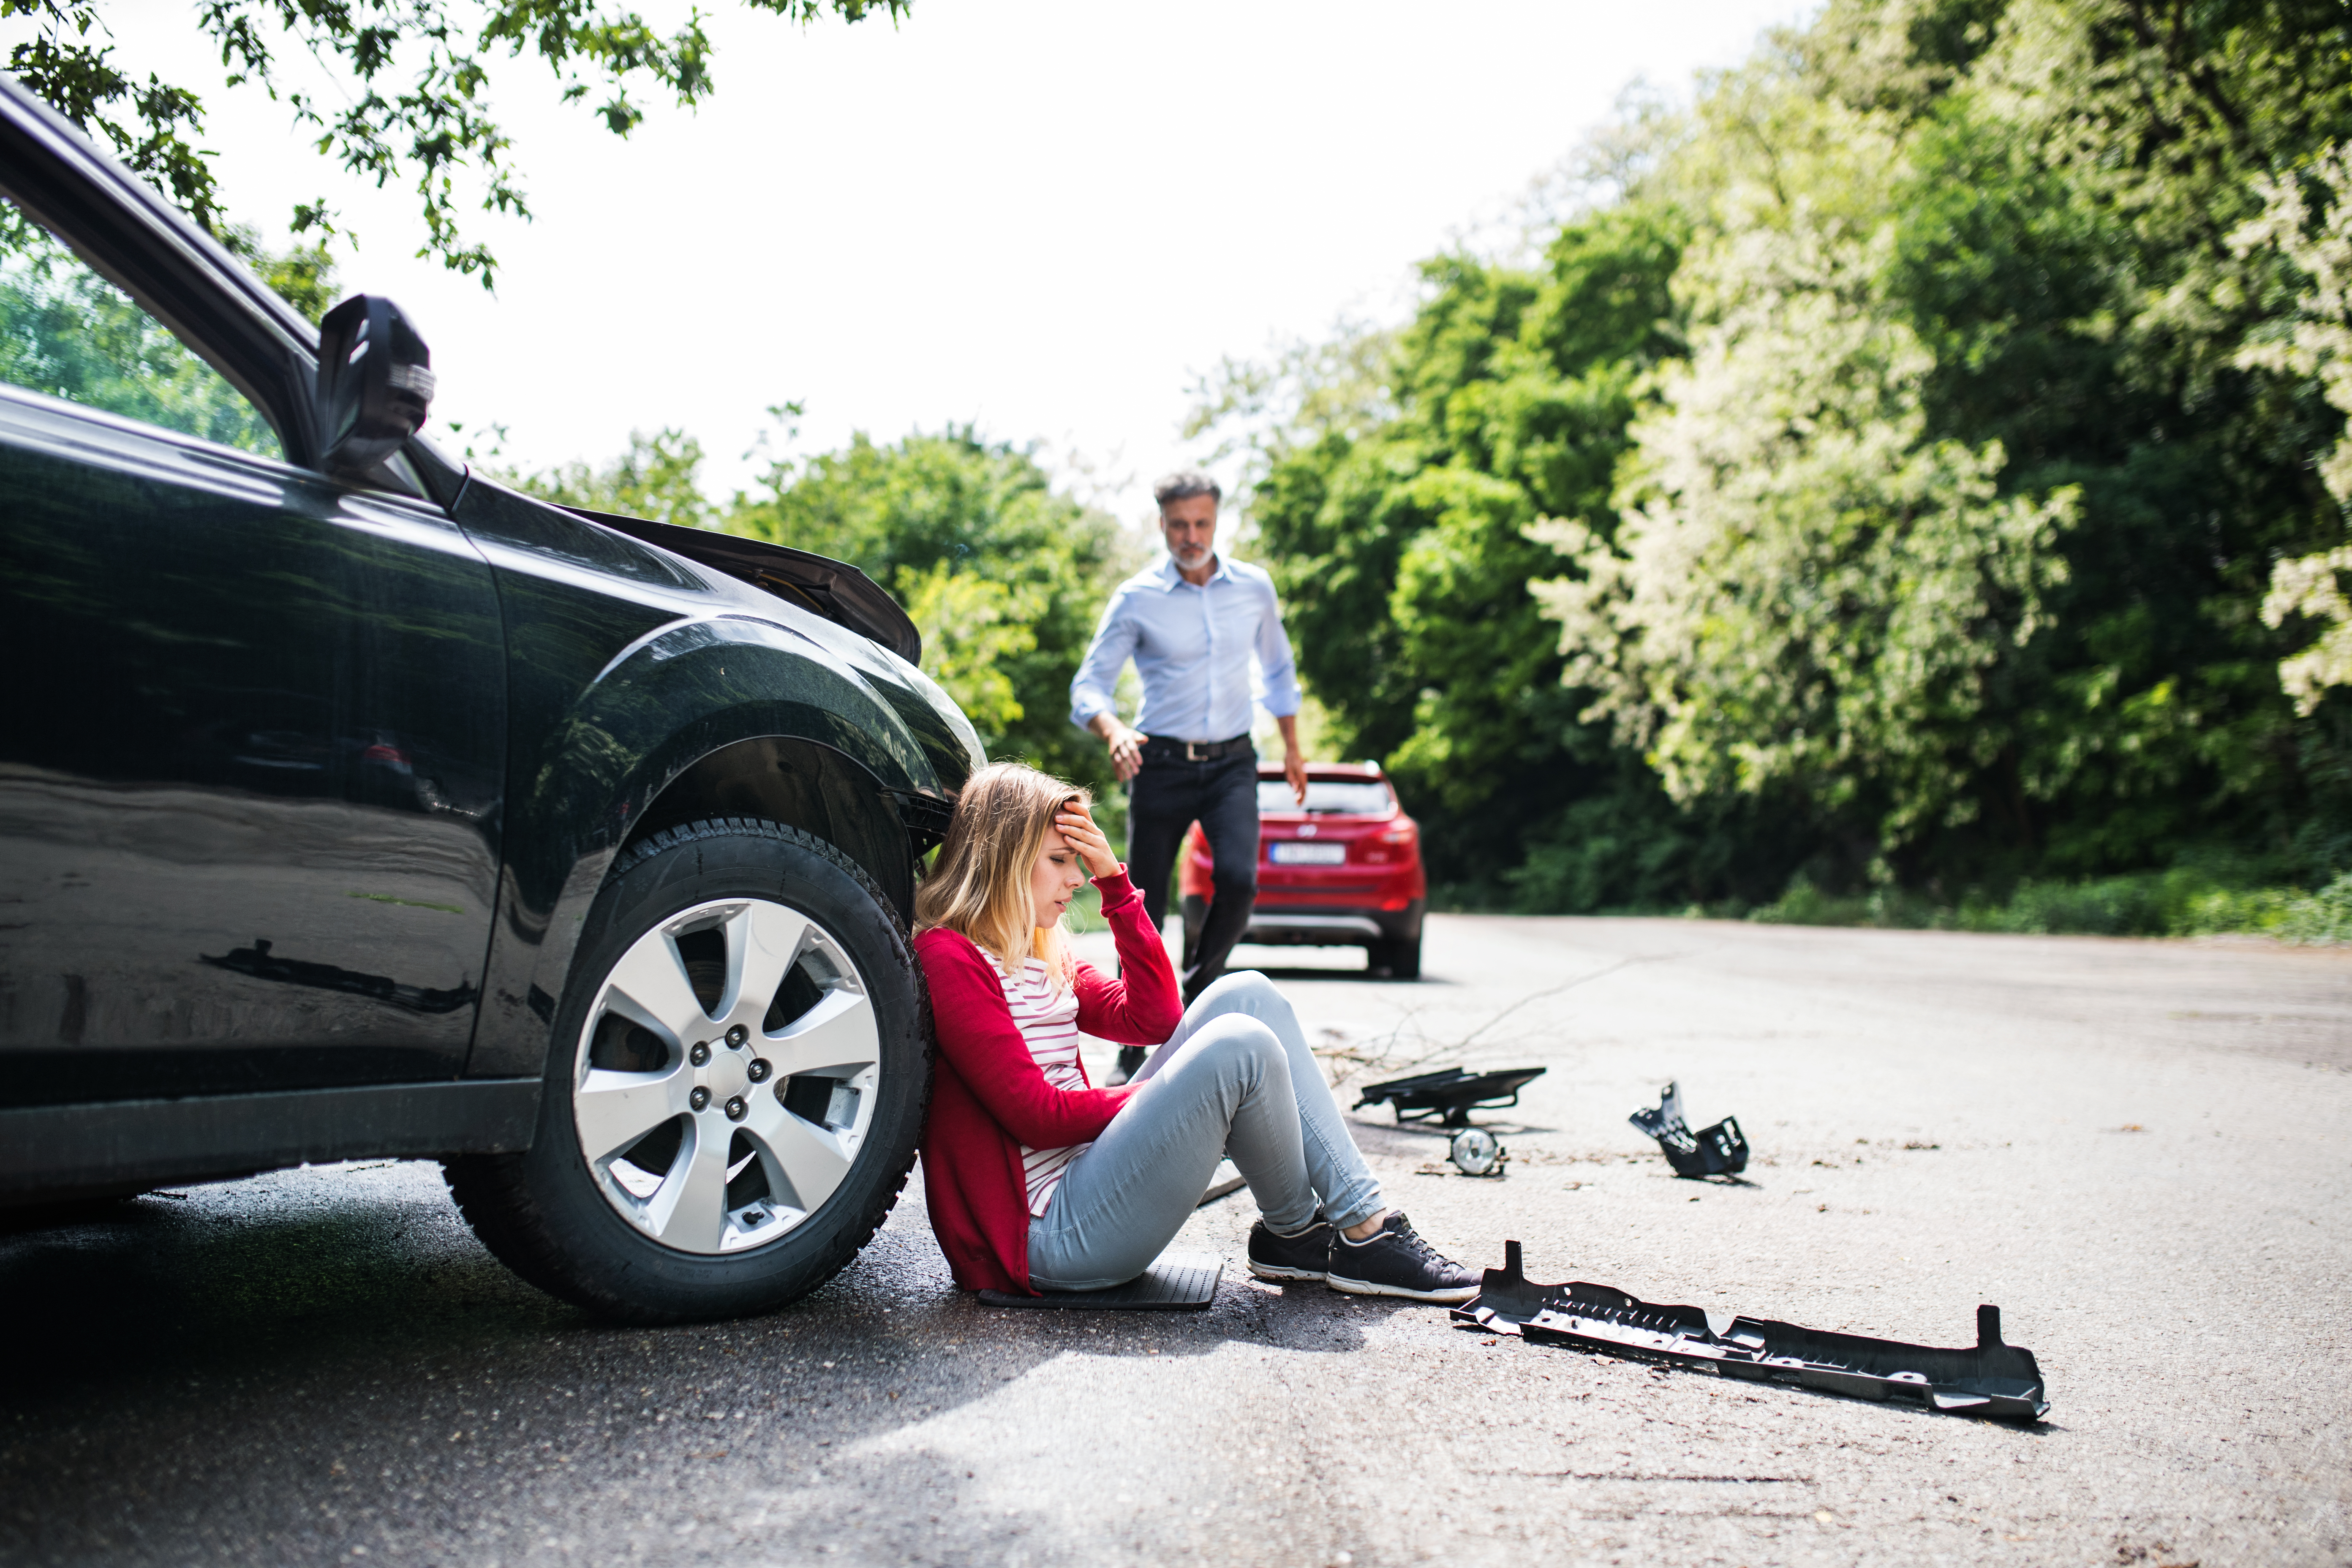 young-woman-by-the-car-after-an-accident-and-a-4QU9WYC